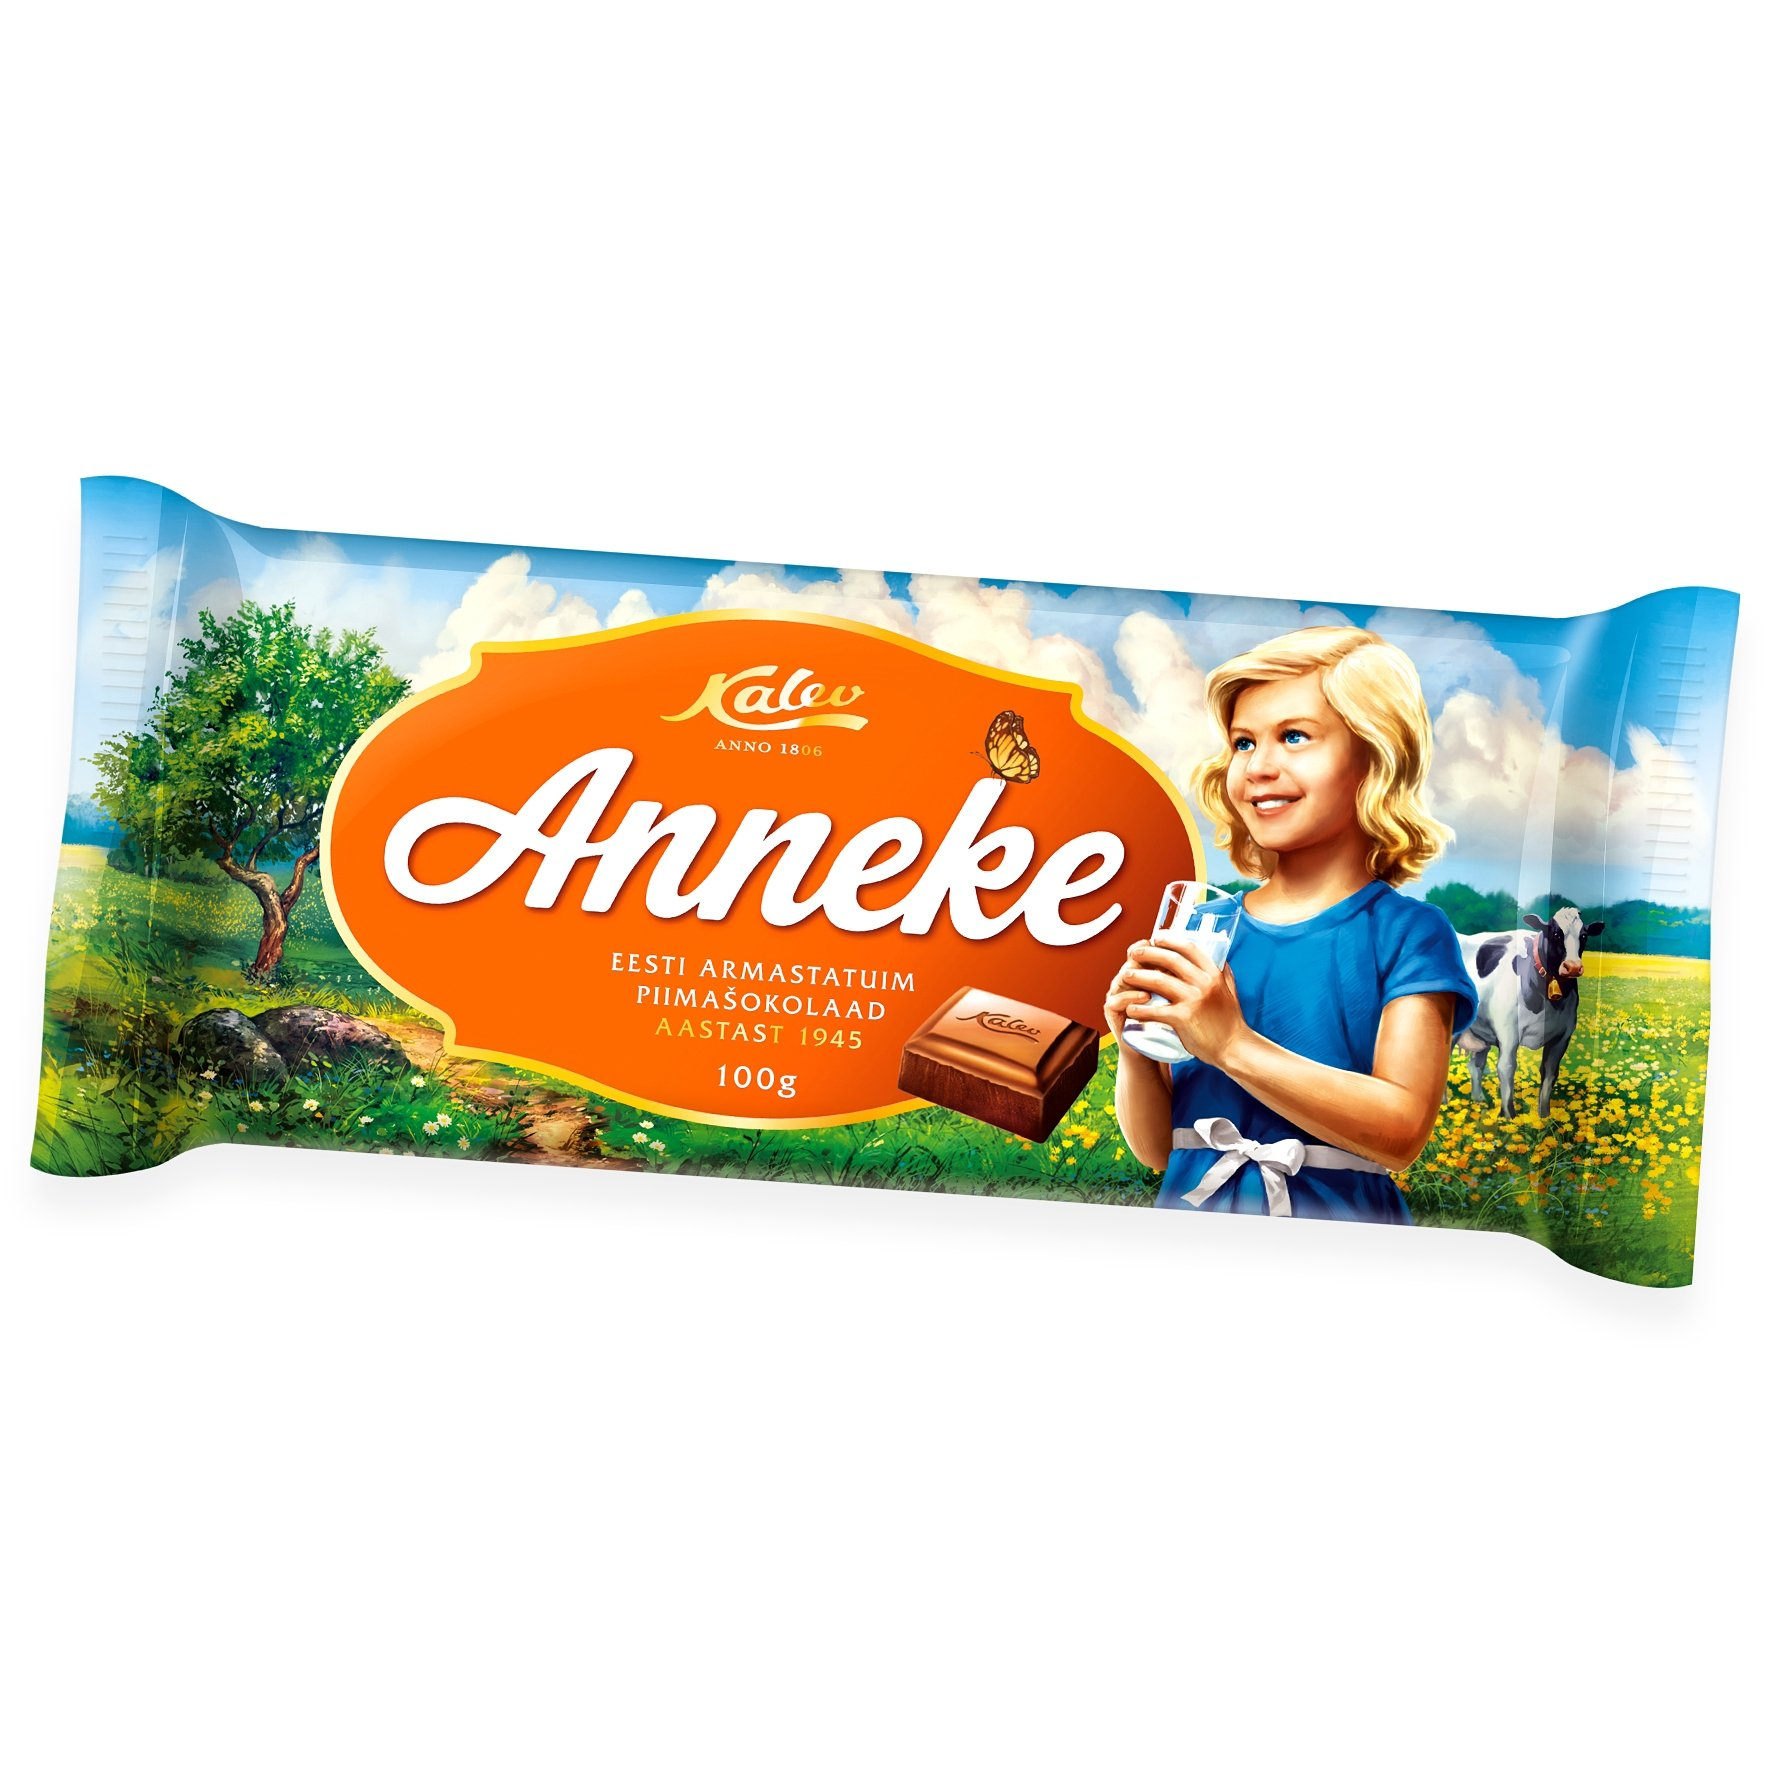 Kalev Anneke milk chocolate 100g